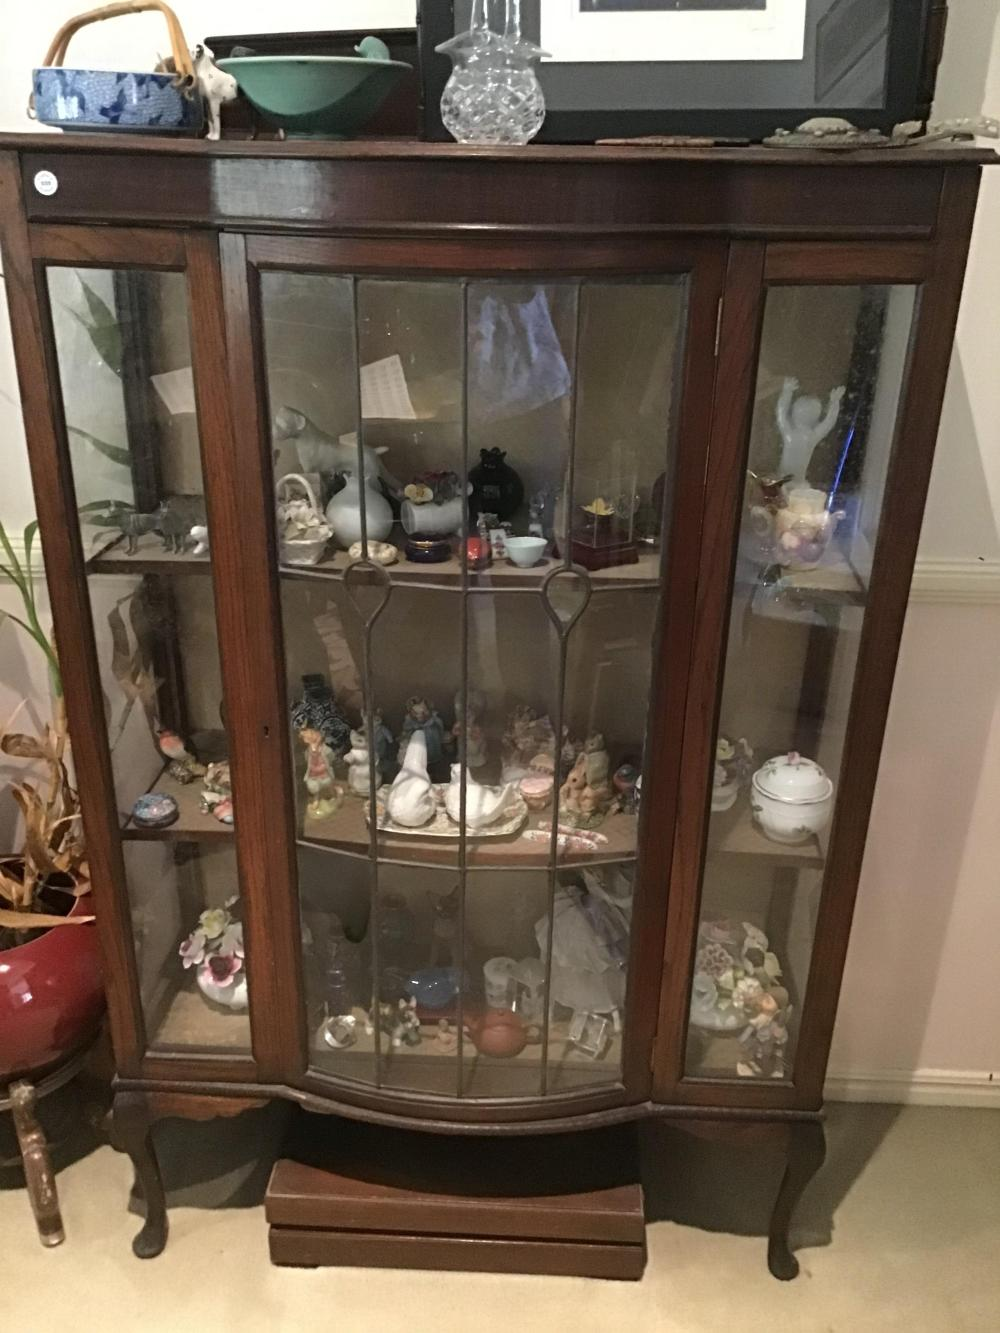 Vintage solid timber bow fronted display case with leadlight glazing and Queen Anne legs